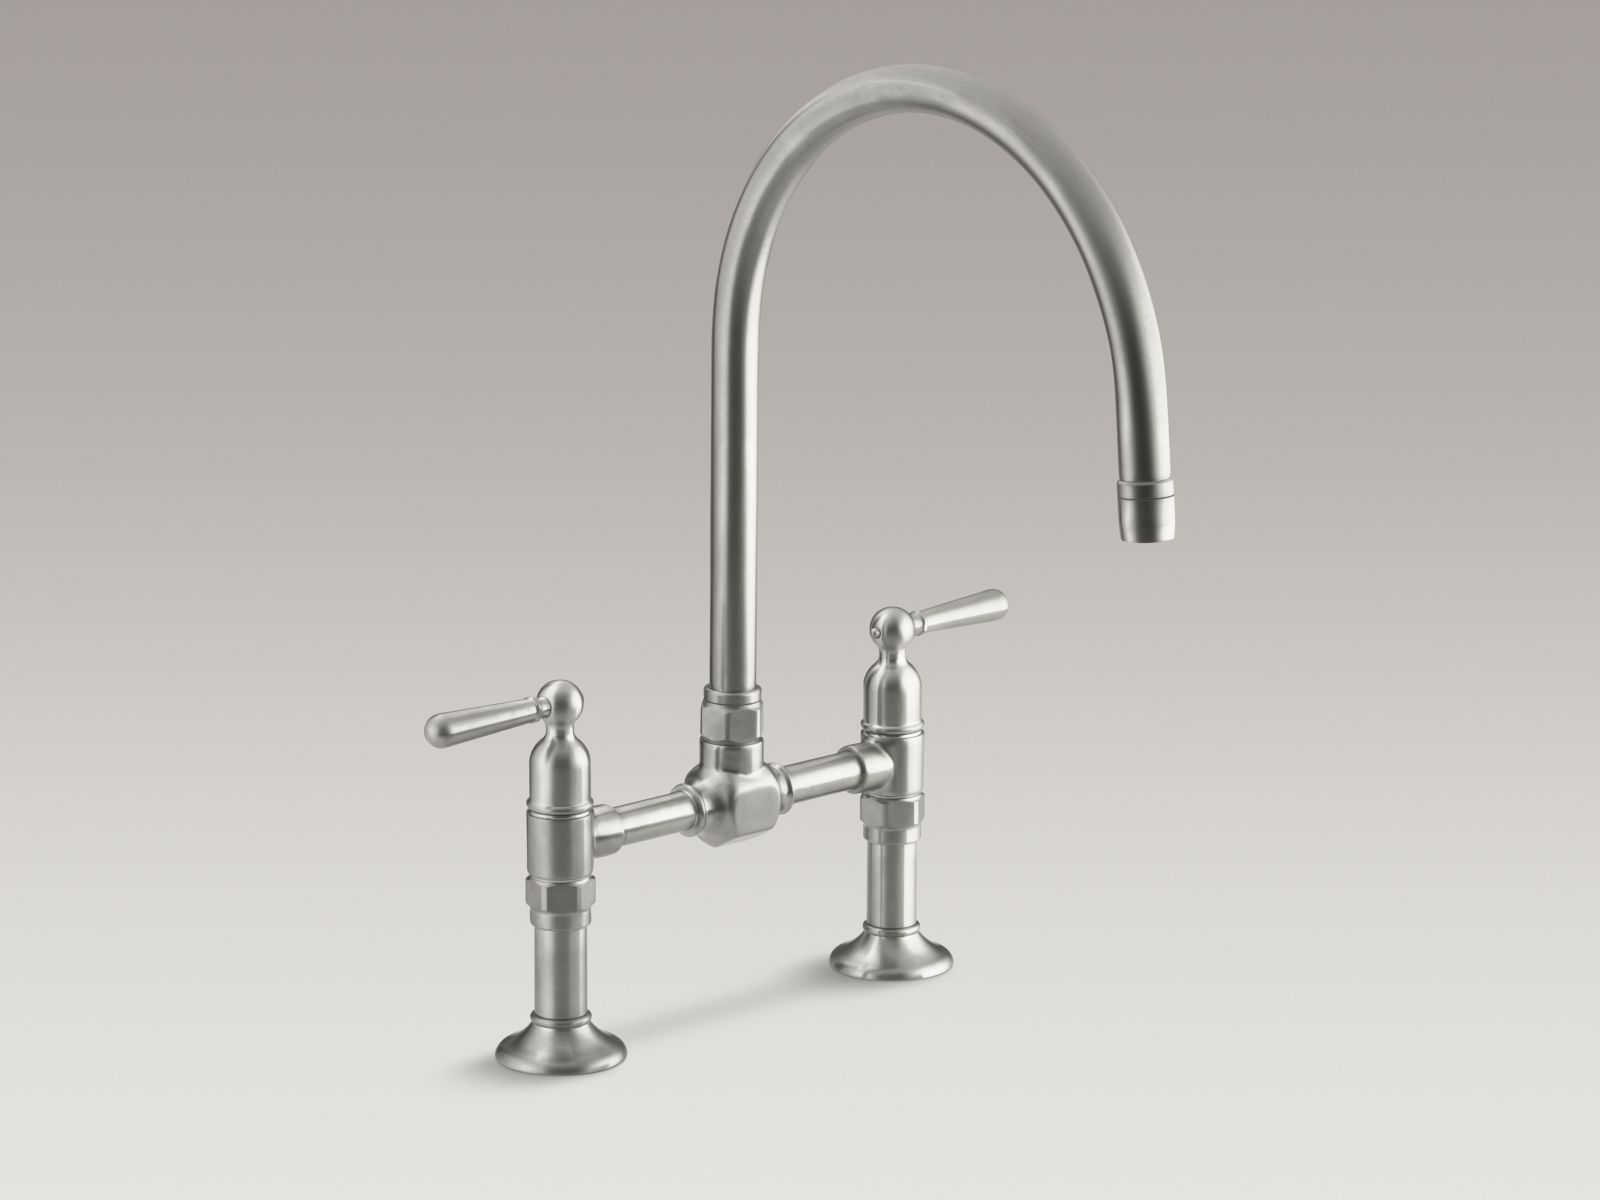 BuyPlumbing.net - Product: Waterstone 3100SN Traditional Wall ...